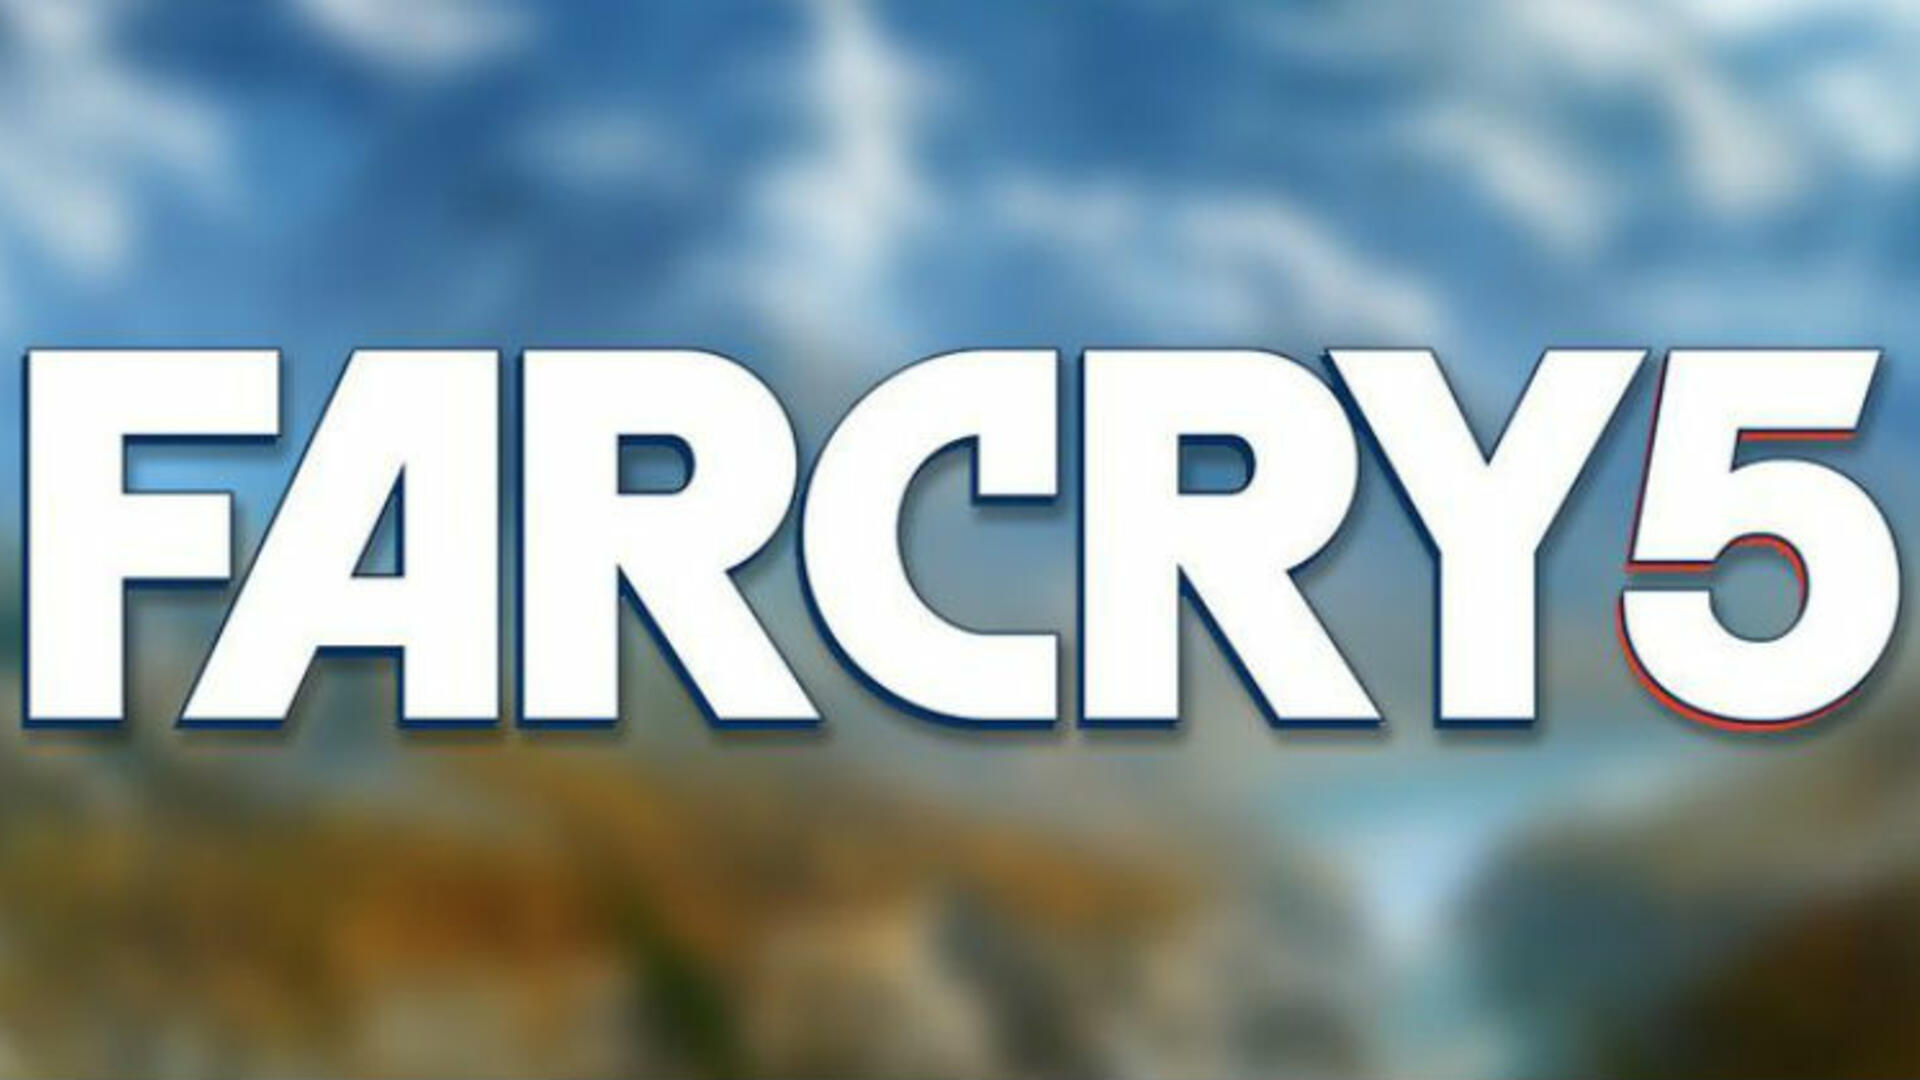 Far Cry 5 New Release Date, Season Pass, Far Cry 3, Arcade, Vehicles, Animals, Location, Religious Cult, Trailers - Everything we Know